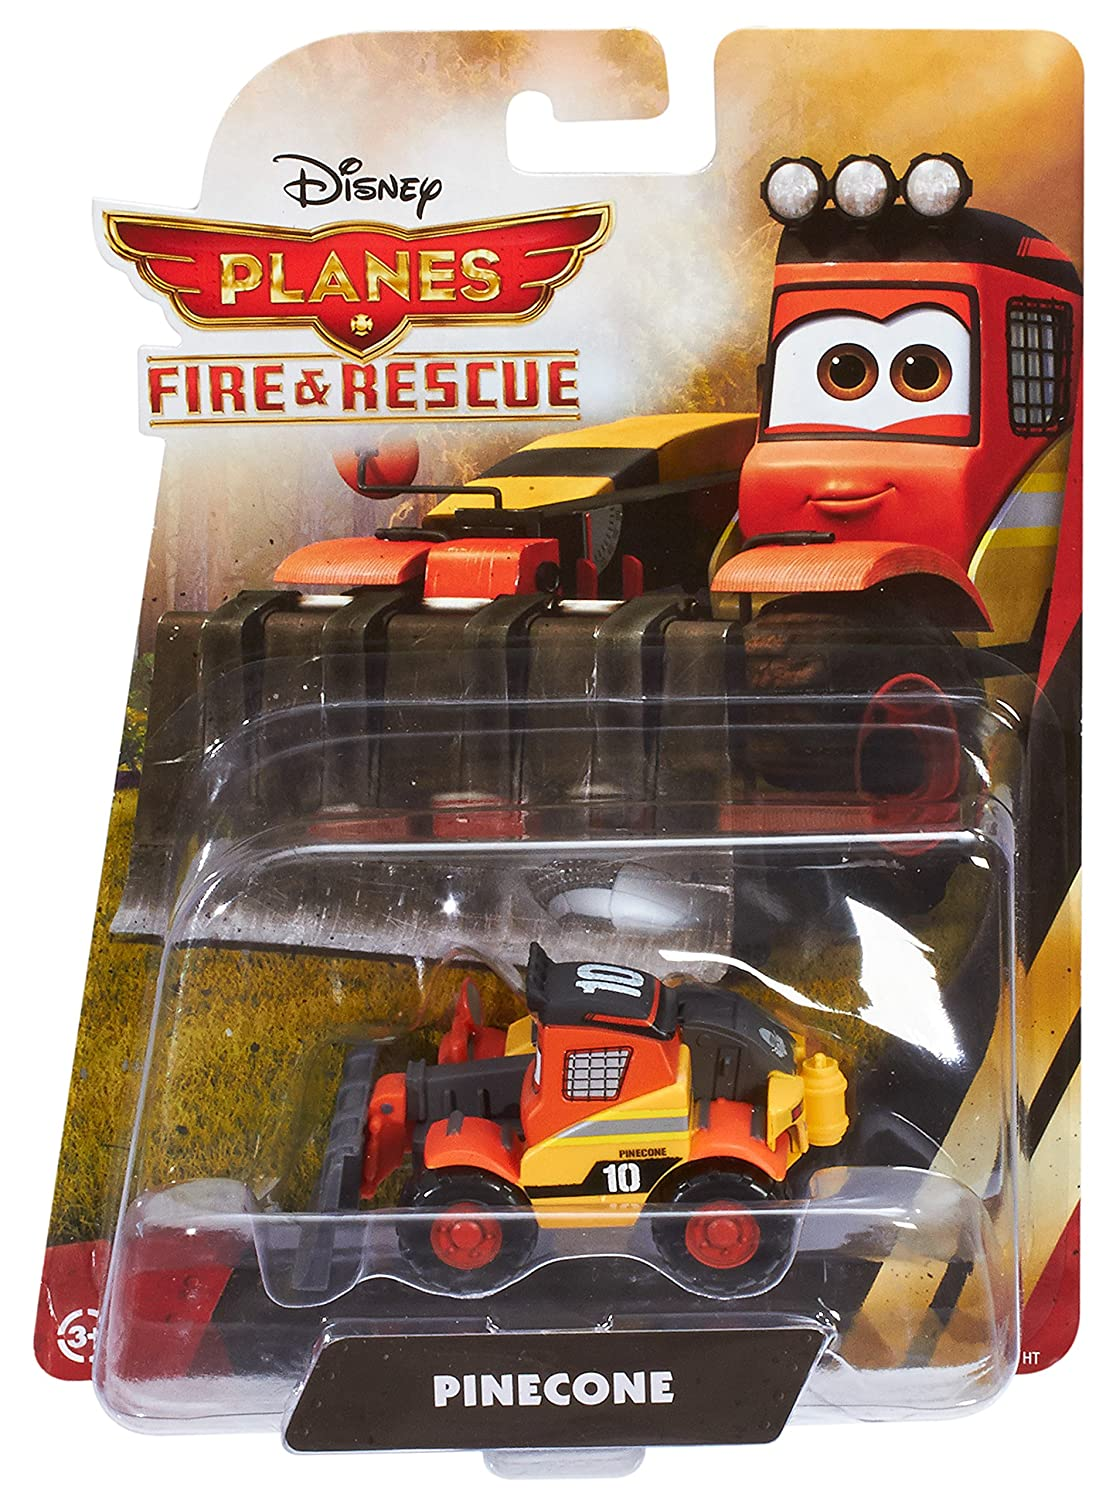 Planes Fire and Rescue Coloring Pages Pinecone Planes and